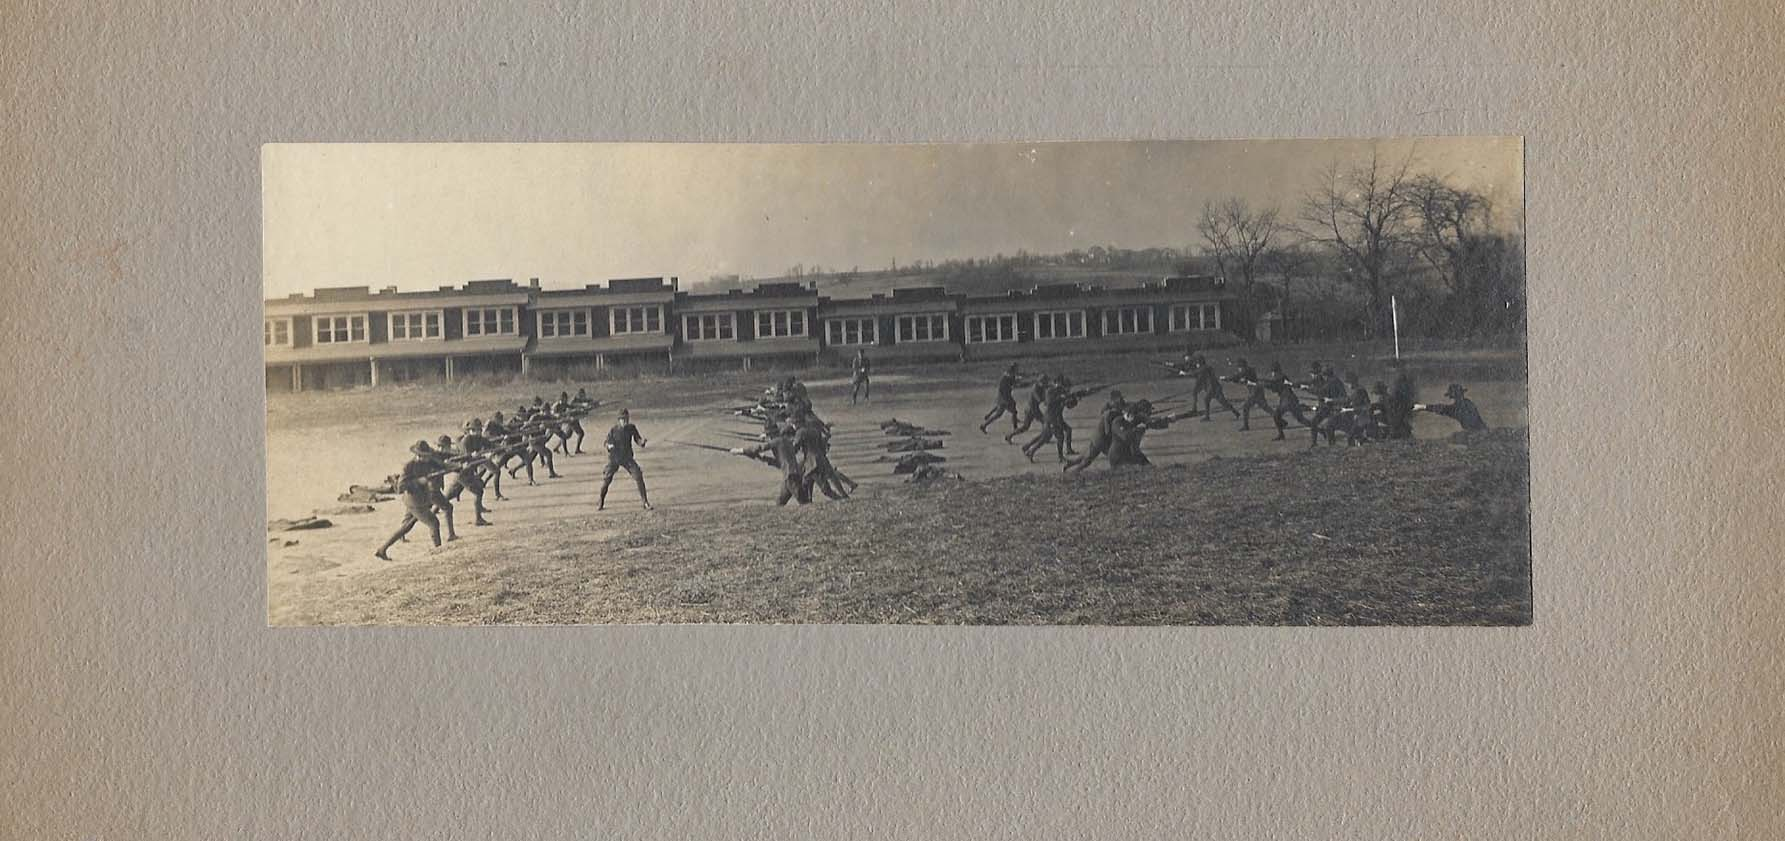 The Moravian College Student Army Training Corps in 1917 performing training maneuvers on the location of where Johnston Hall now stands.